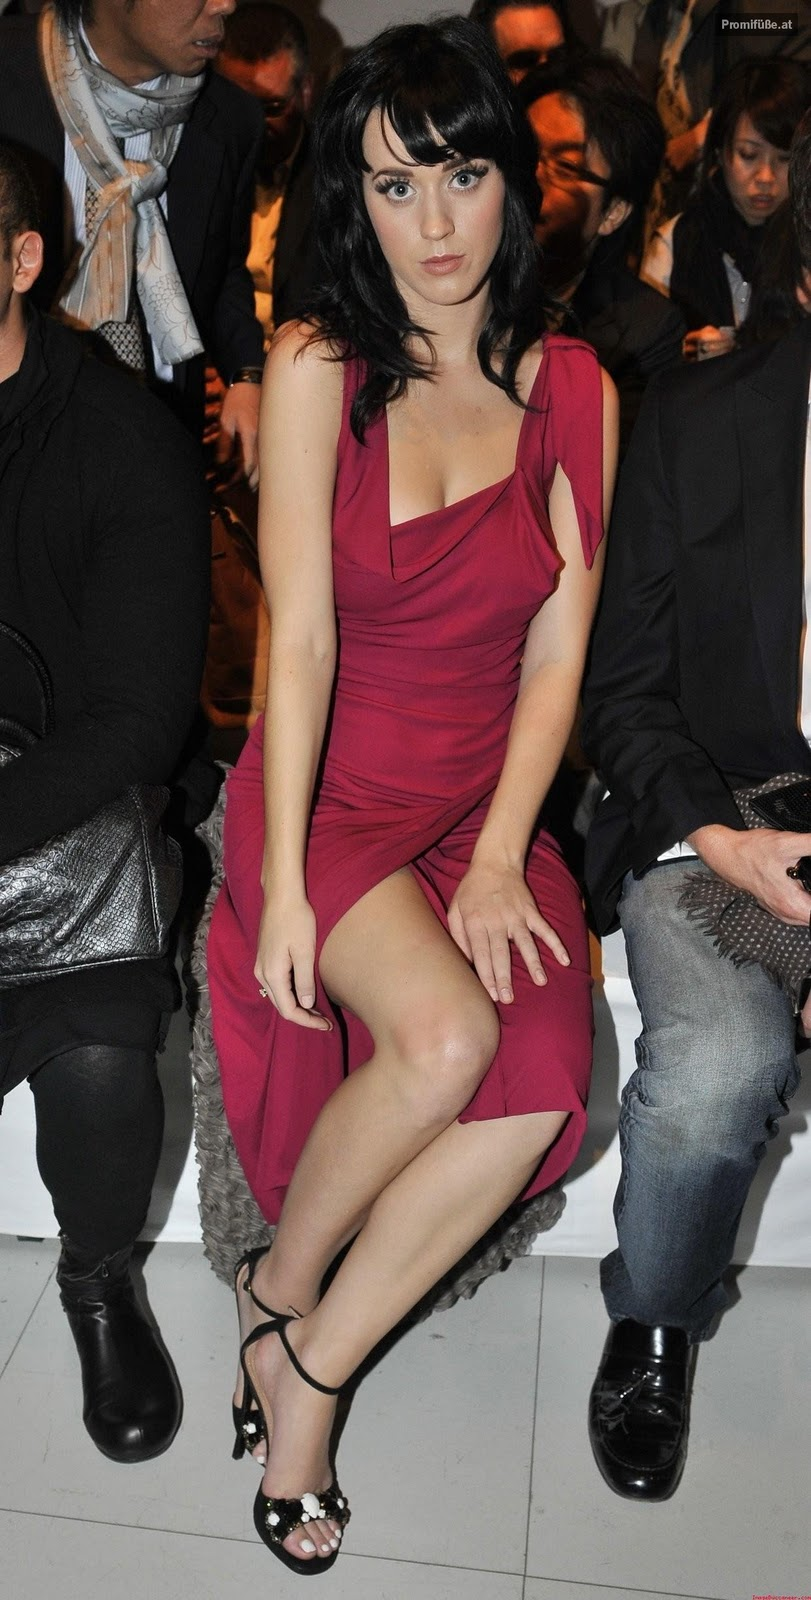 Ashley moore and justin bieber dating 5